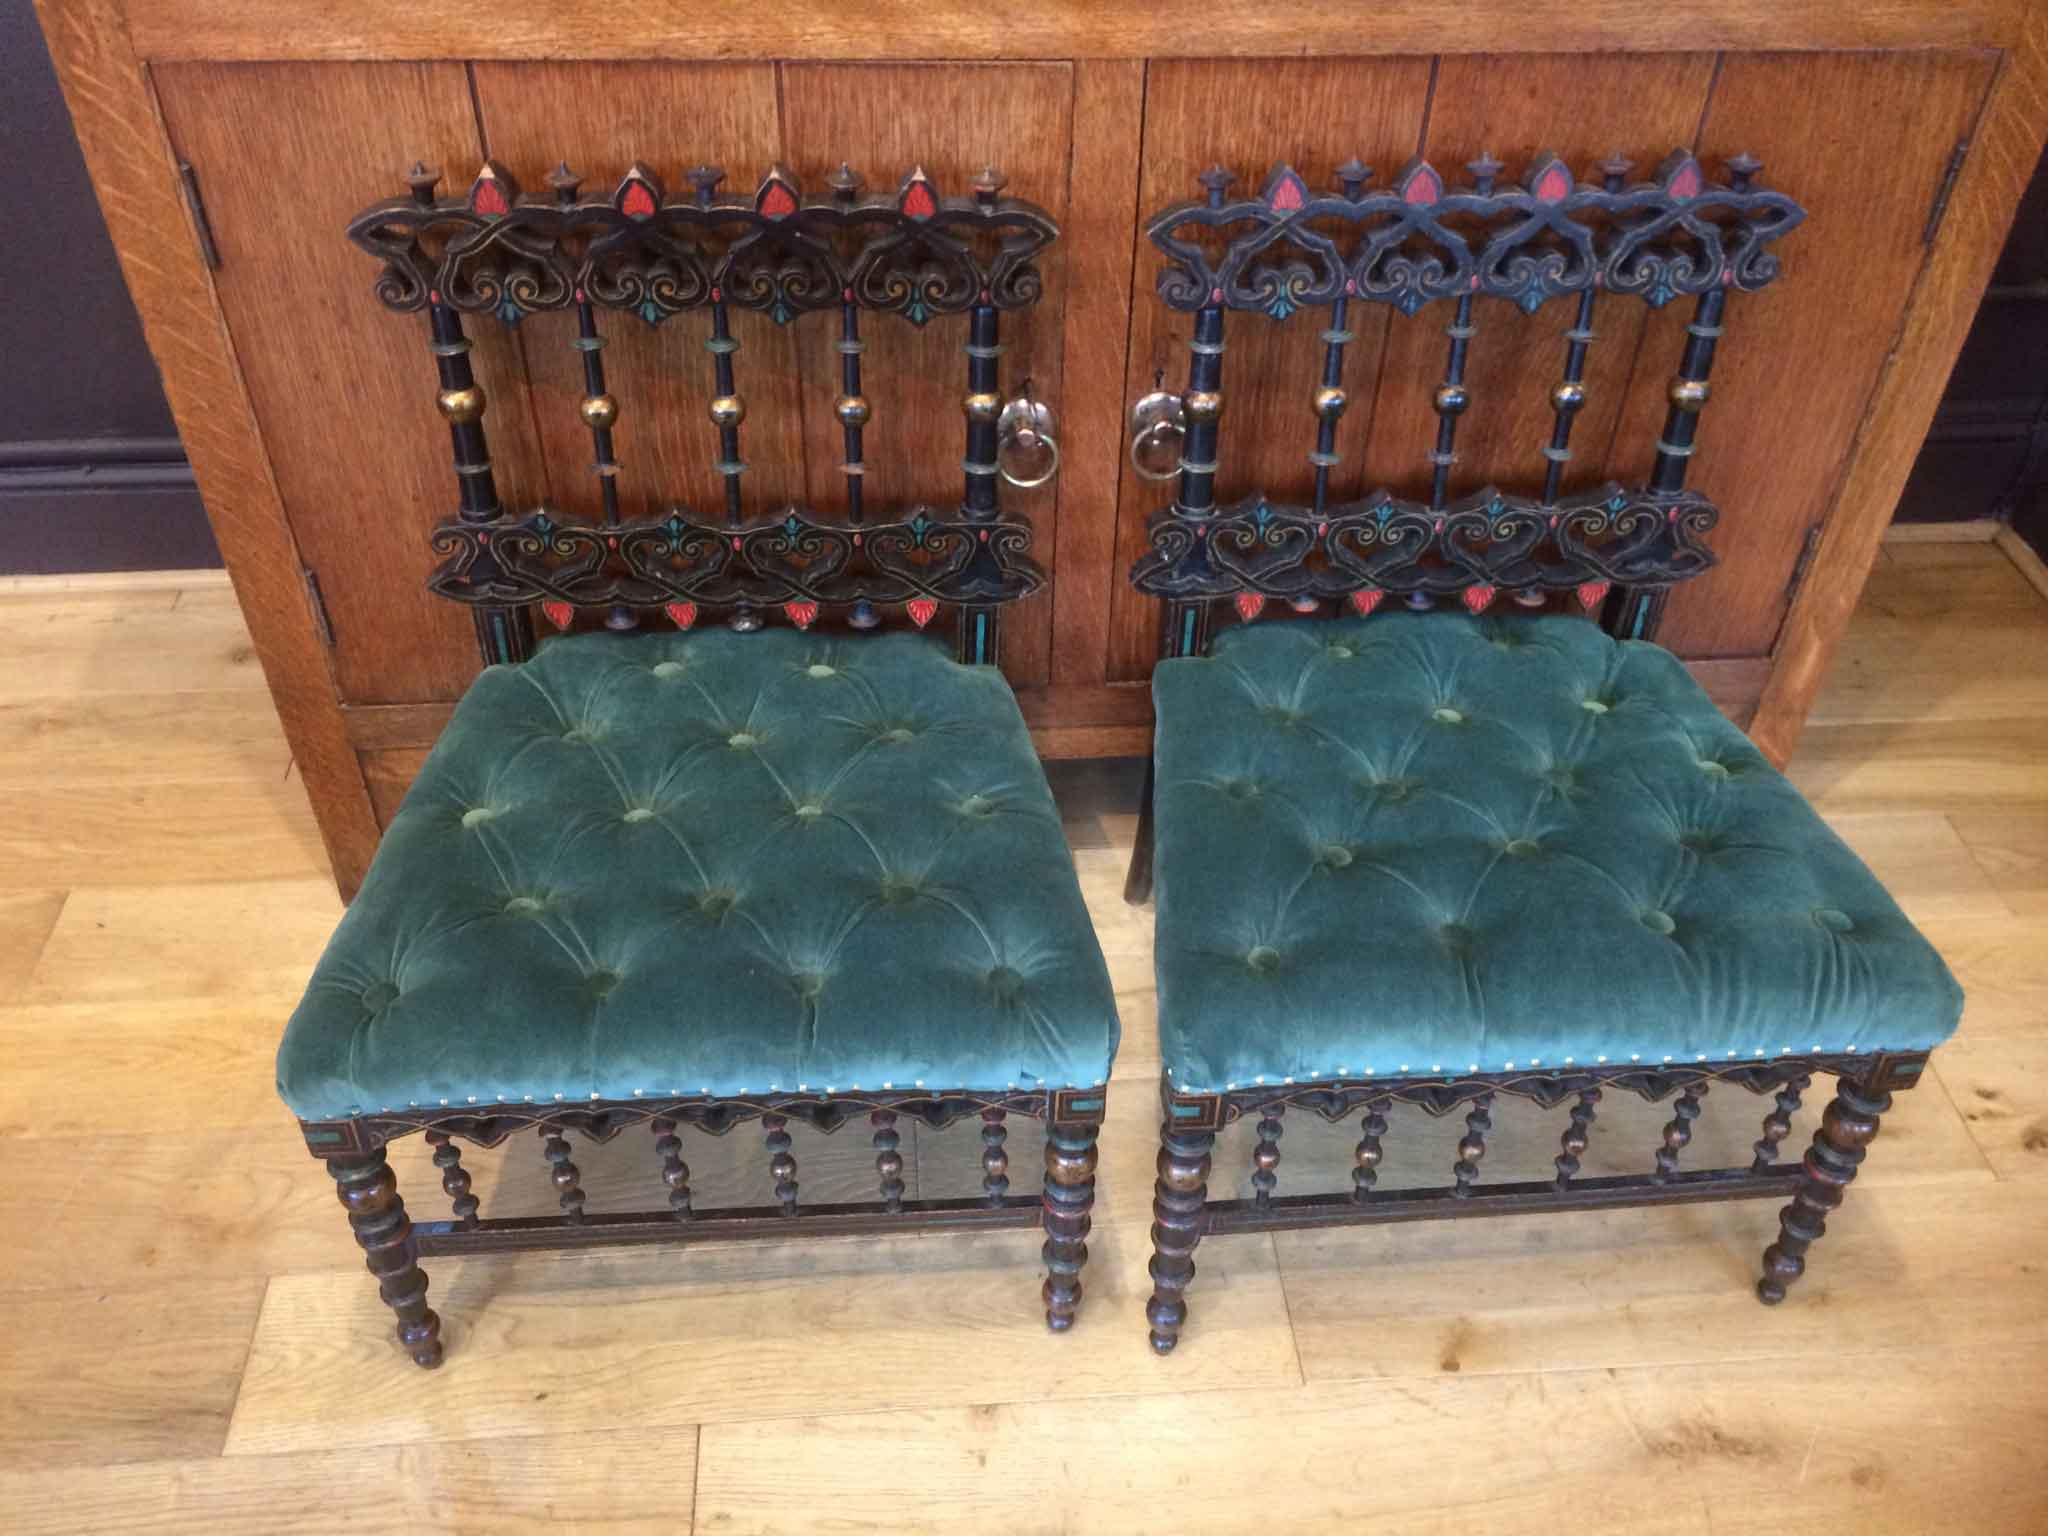 Pair of Anglo Indian aesthetic movement chairs with buttoned seats in velvet